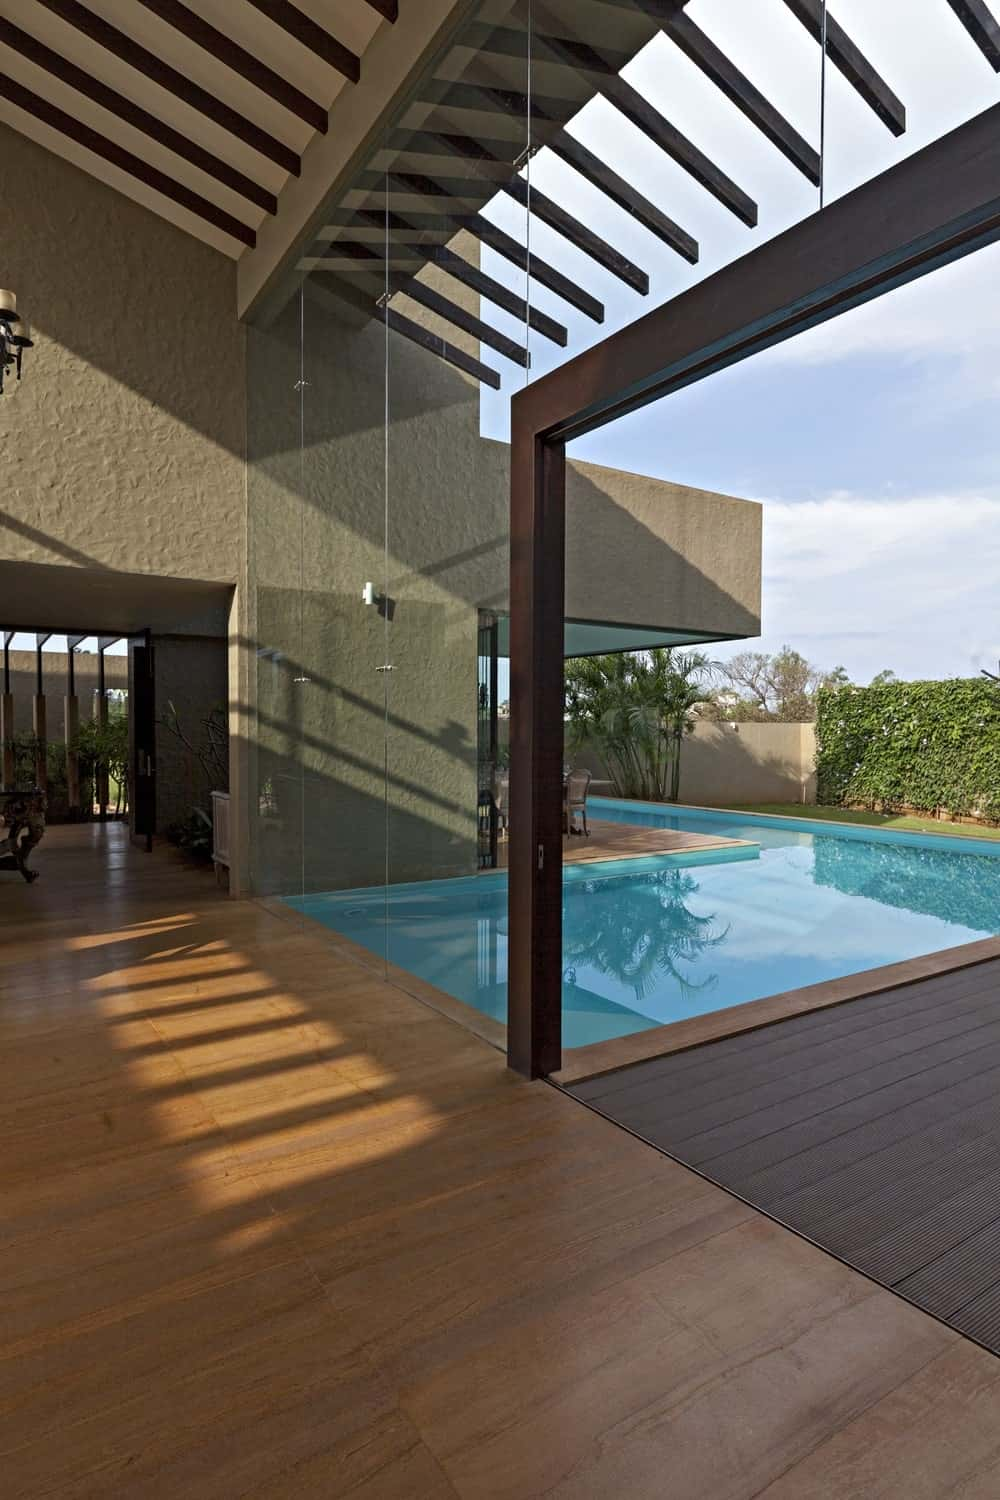 Swimming pool deck in the Monsoon Retreat designed by Abraham John Architects.